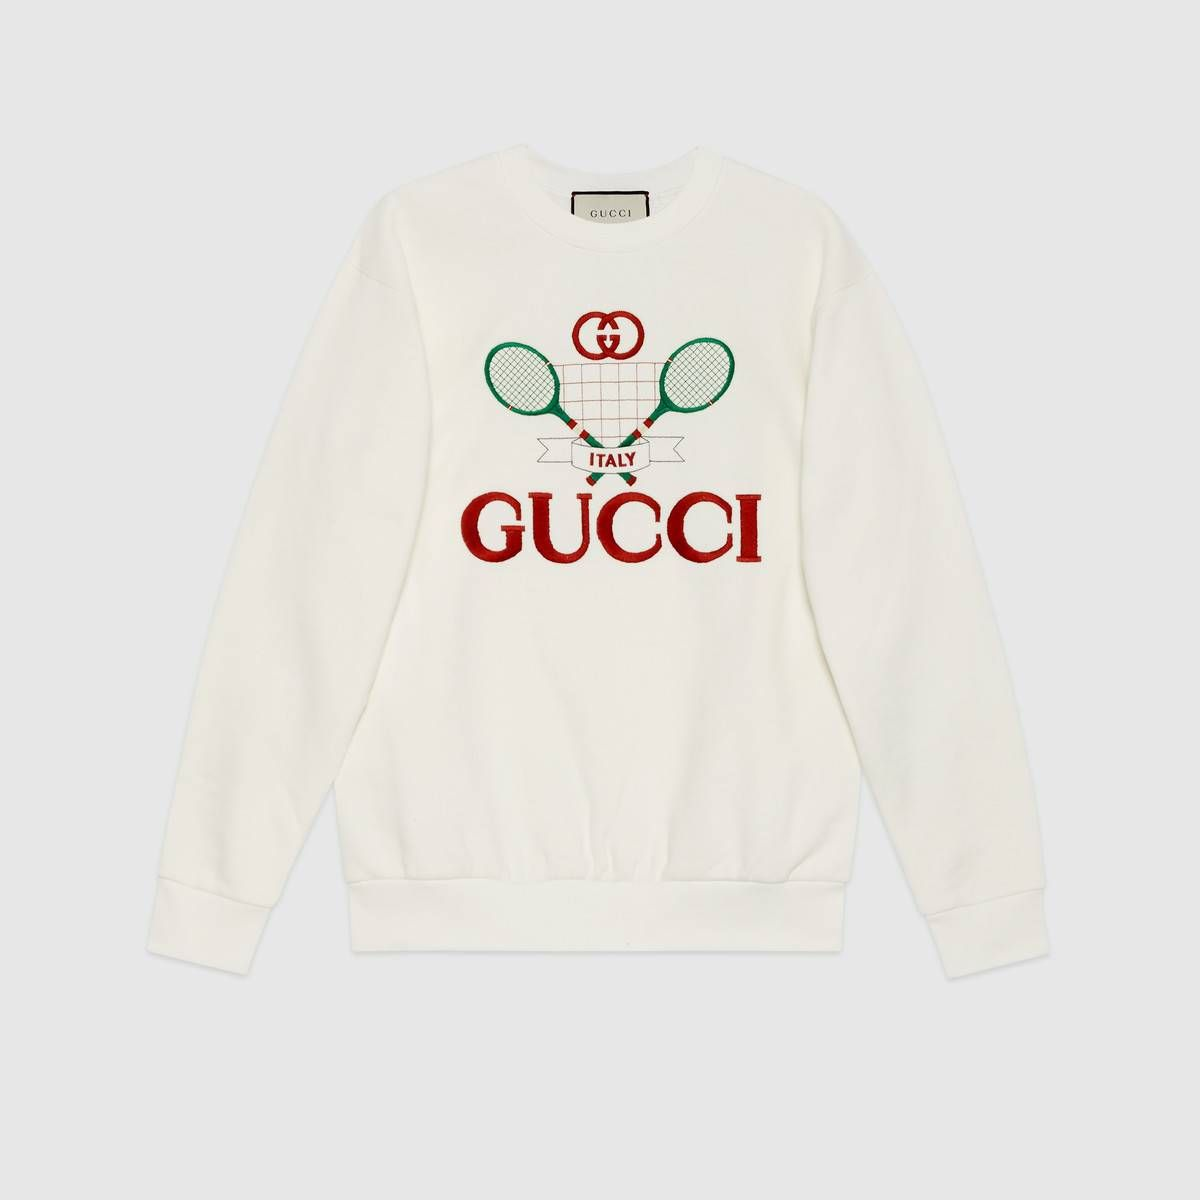 Shop The Oversize Sweatshirt With Gucci Tennis By Gucci Crafted From Ivory Felted Cotton Jersey This Sweat Sweatshirts Sweatshirts Women Designer Sweatshirts [ 1200 x 1200 Pixel ]